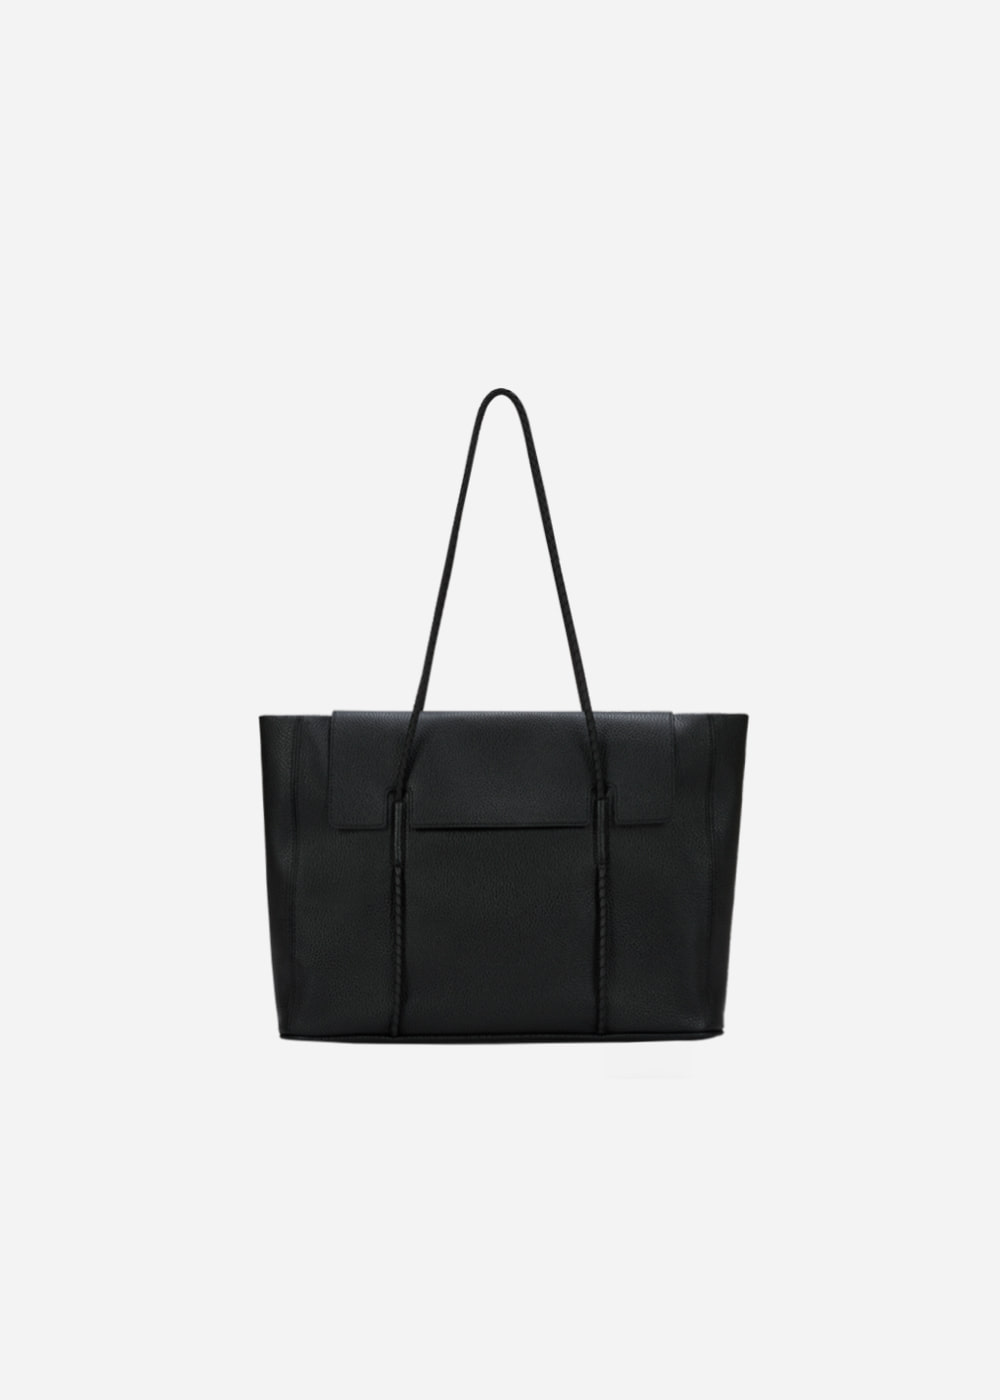 Norah Bag Black Medium